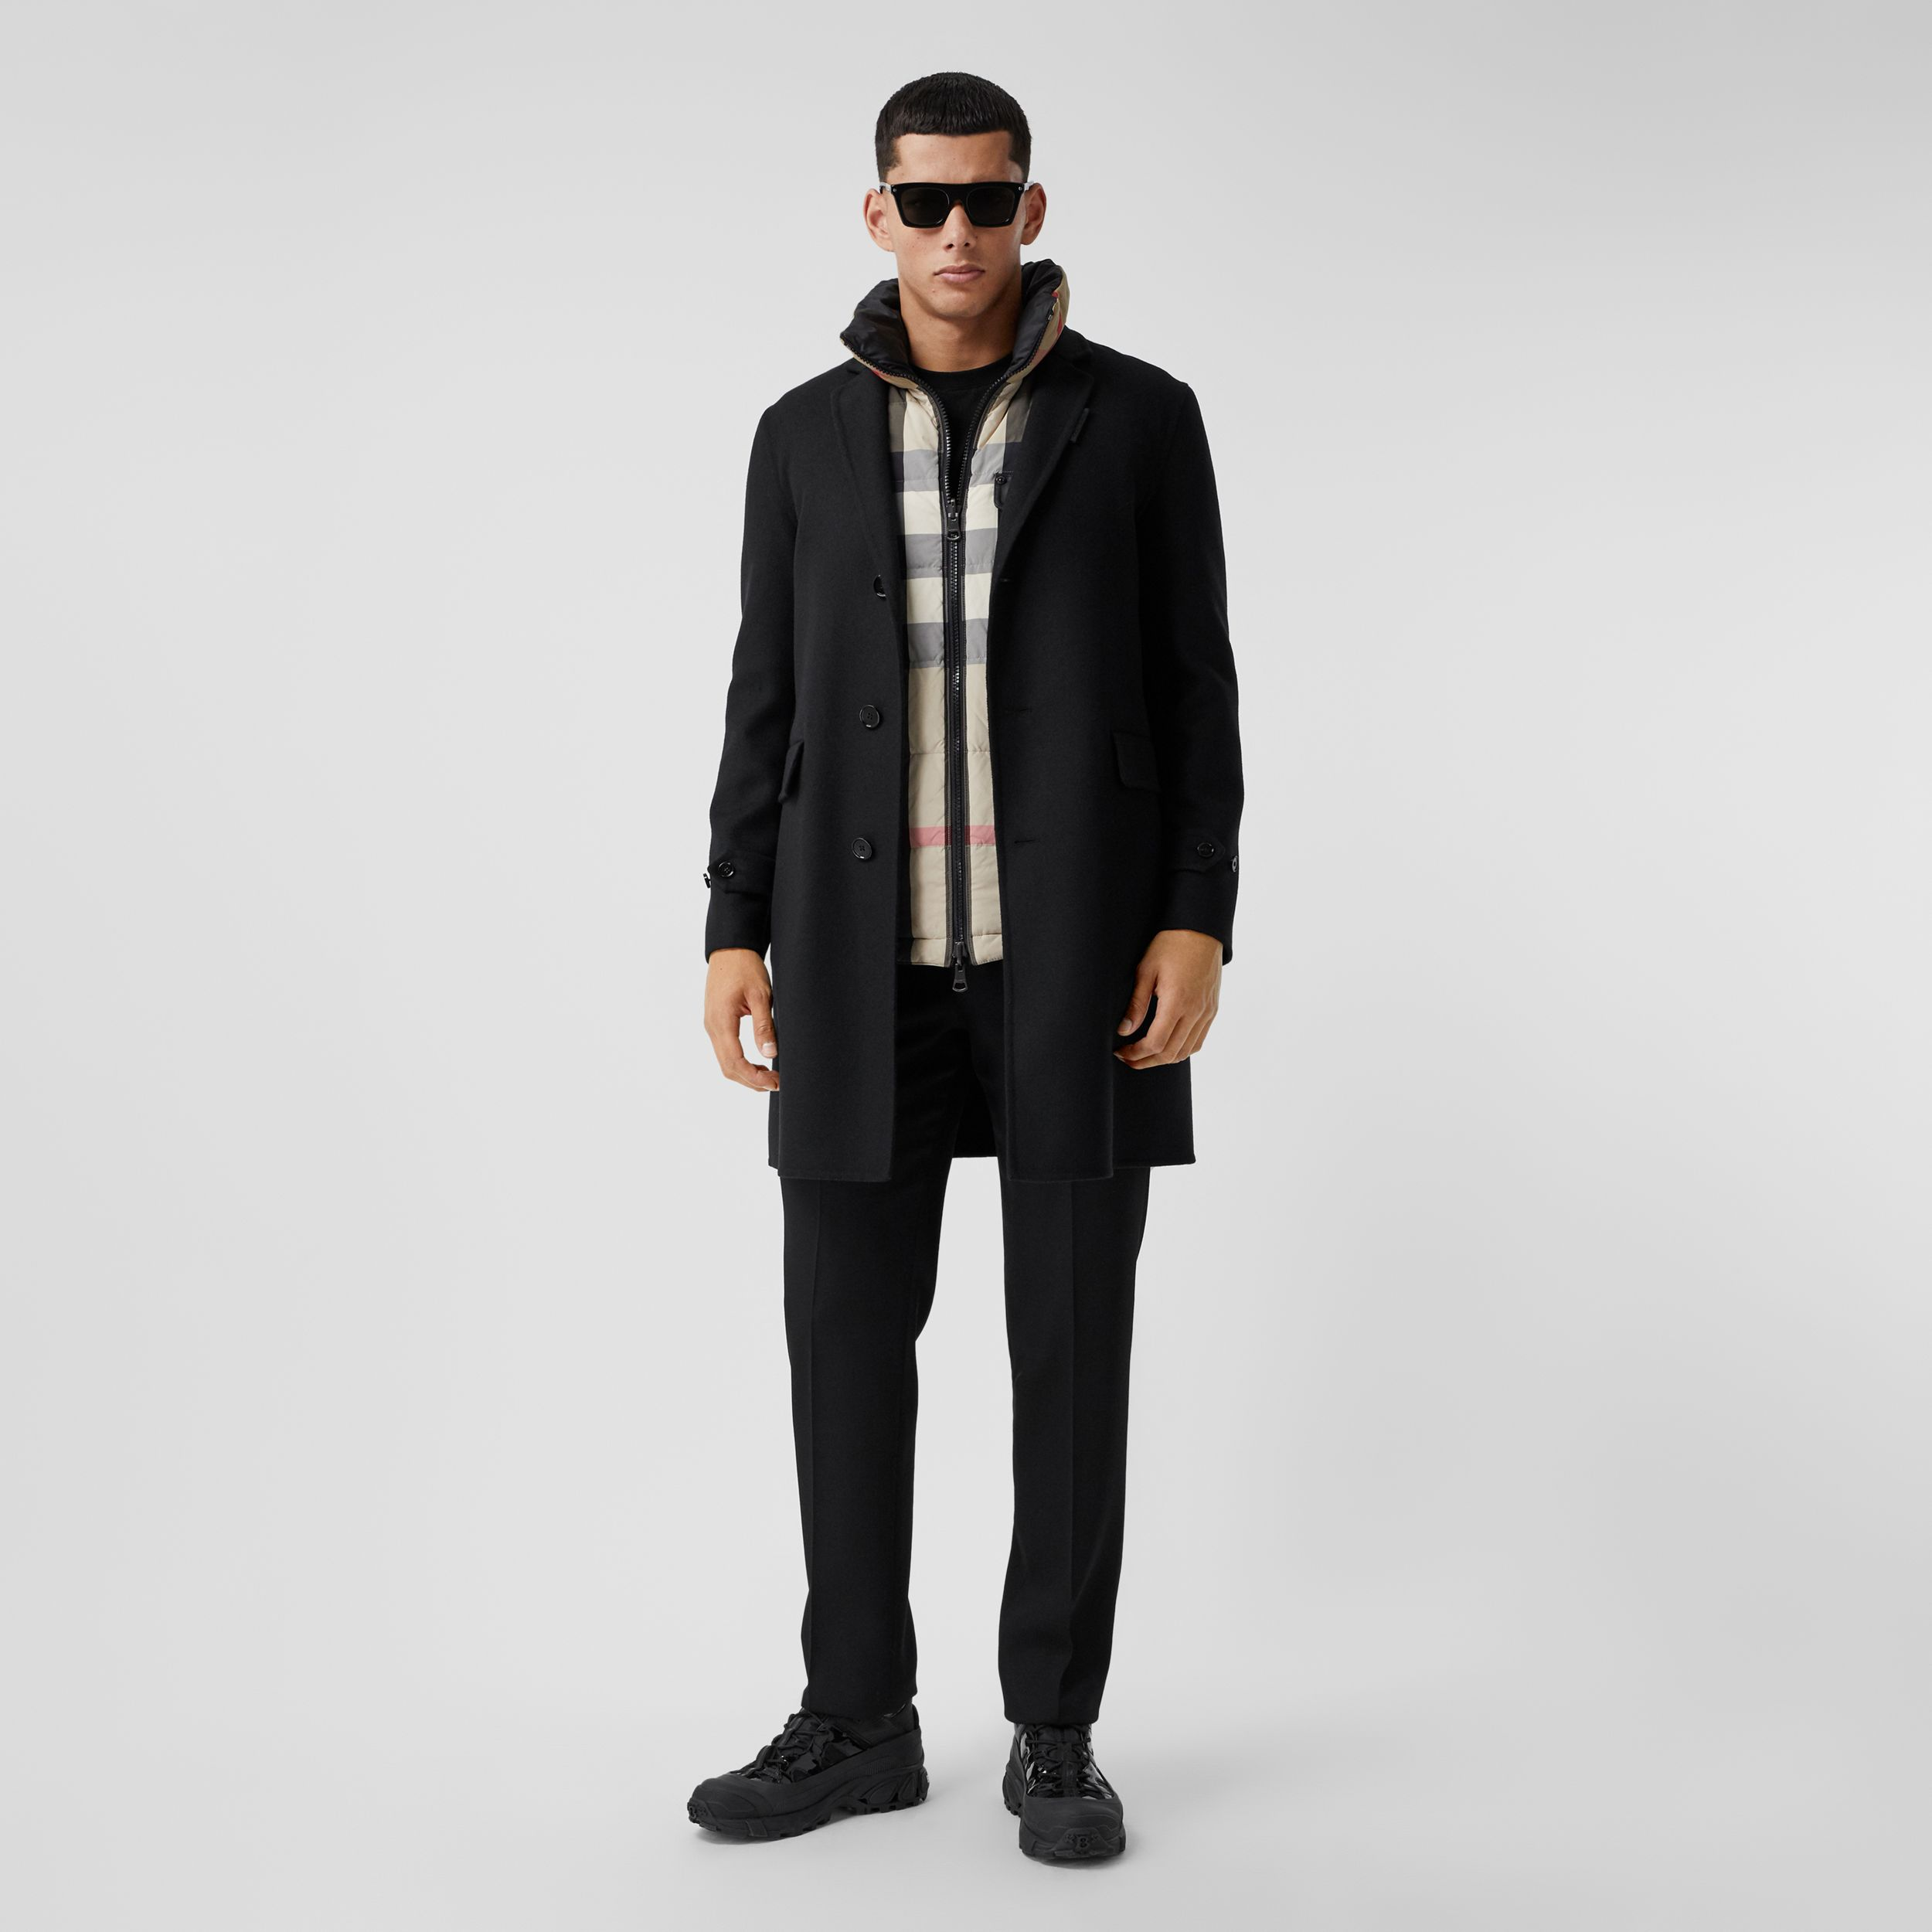 Wool Cashmere Lab Coat in Black - Men | Burberry - 1